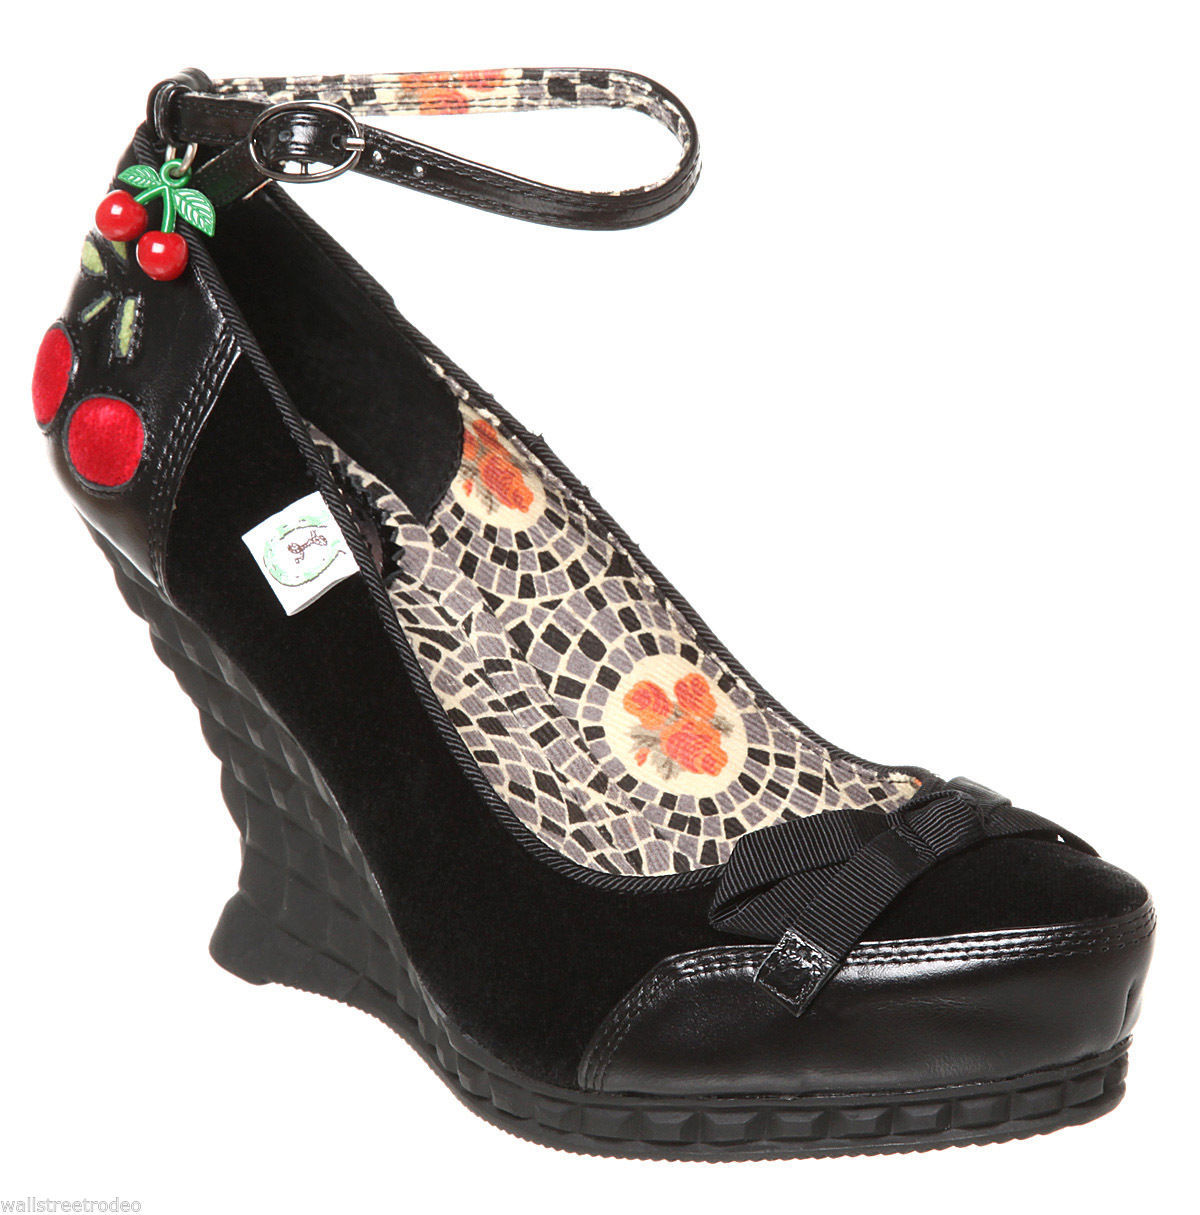 Miss L Fire Cherry Wedge rockabilly ankle wrap heels shoes pin-up 6 UK3.5 36 VLV